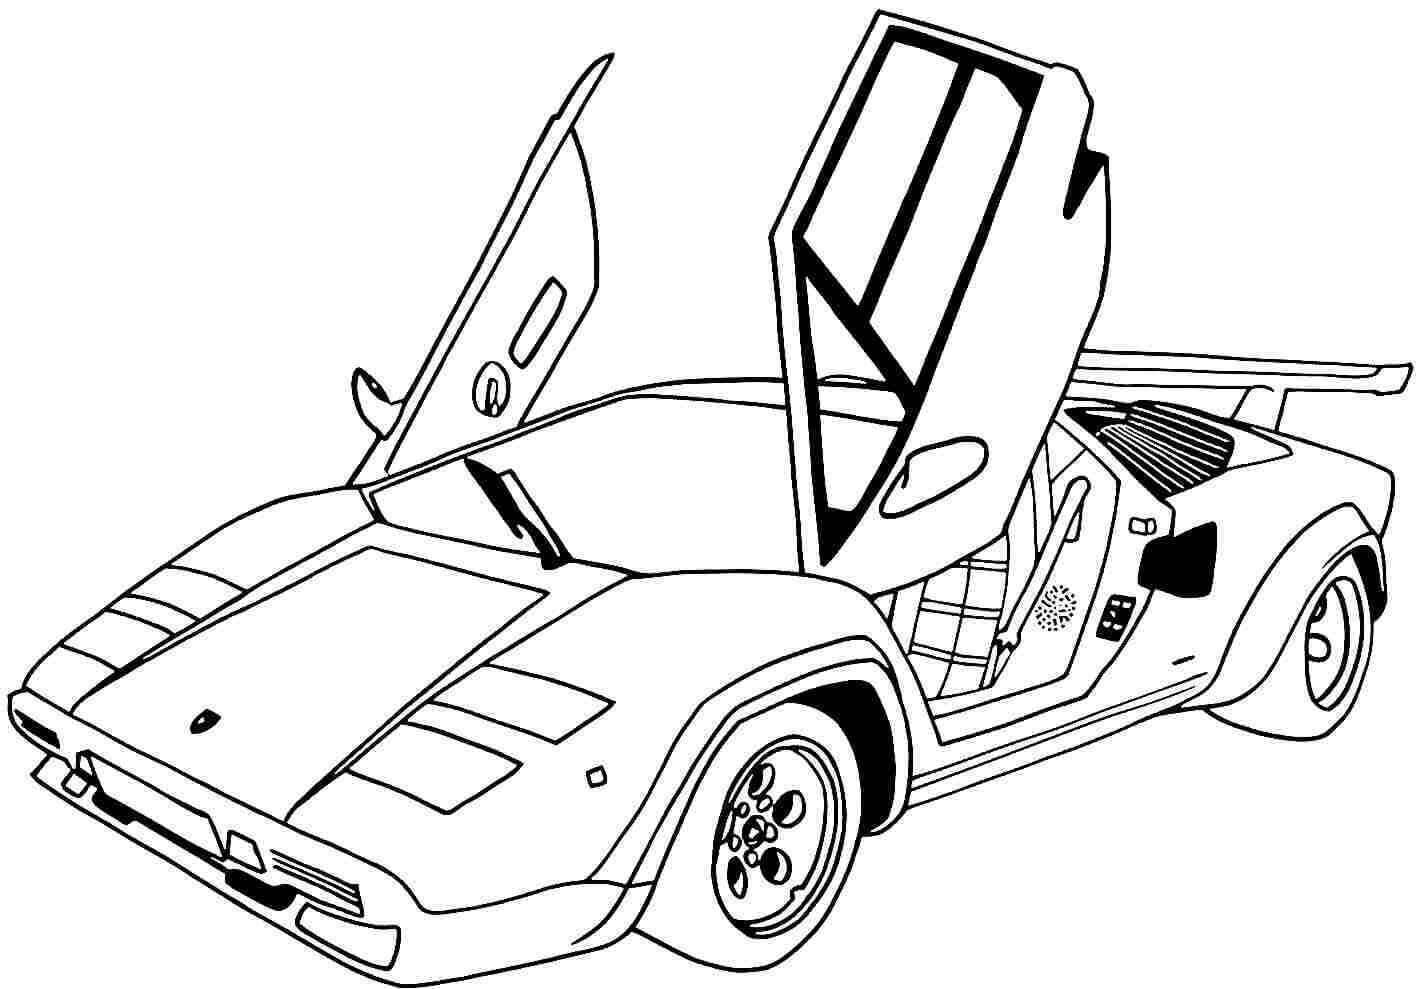 coloring pages of cool cars super car mclaren f1 lm coloring page cool car printable pages coloring cars of cool